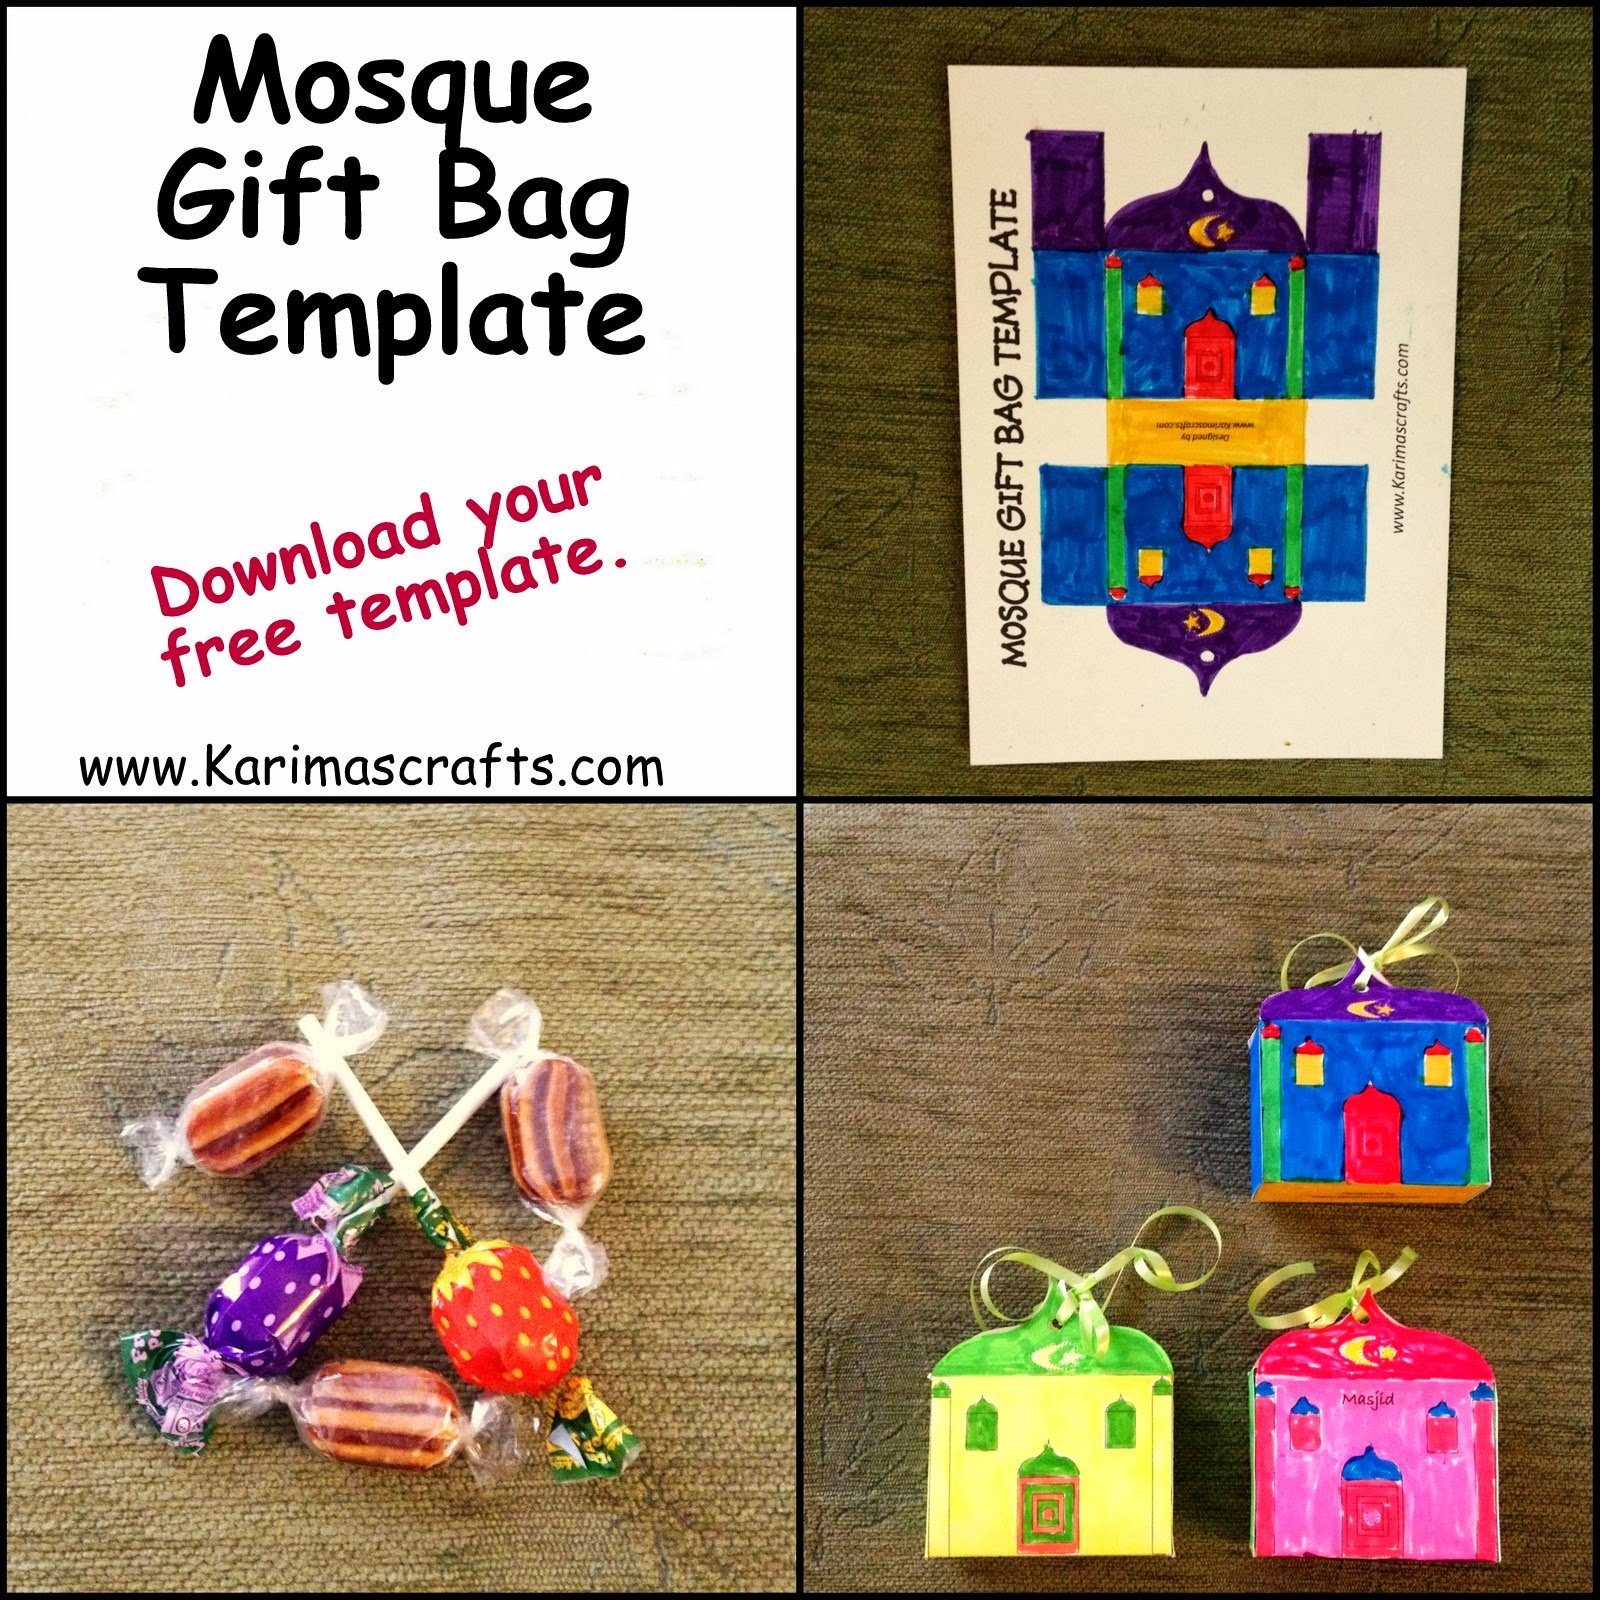 Thoughtful Gift Ideas 9: Make Your Own Mosque Gift Bag